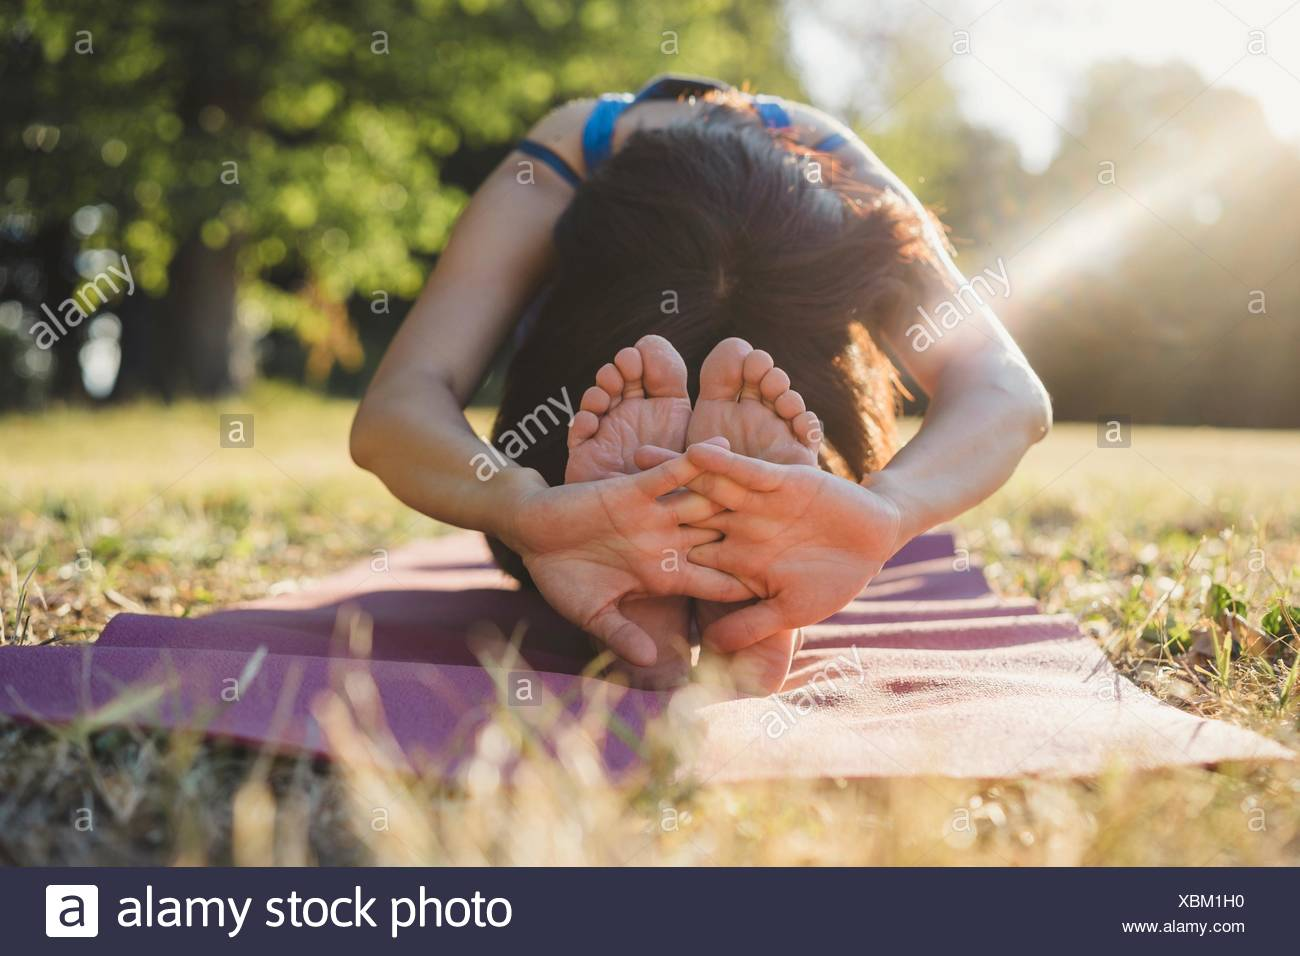 Mature woman in park, sitting, stretching, in yoga position - Stock Image